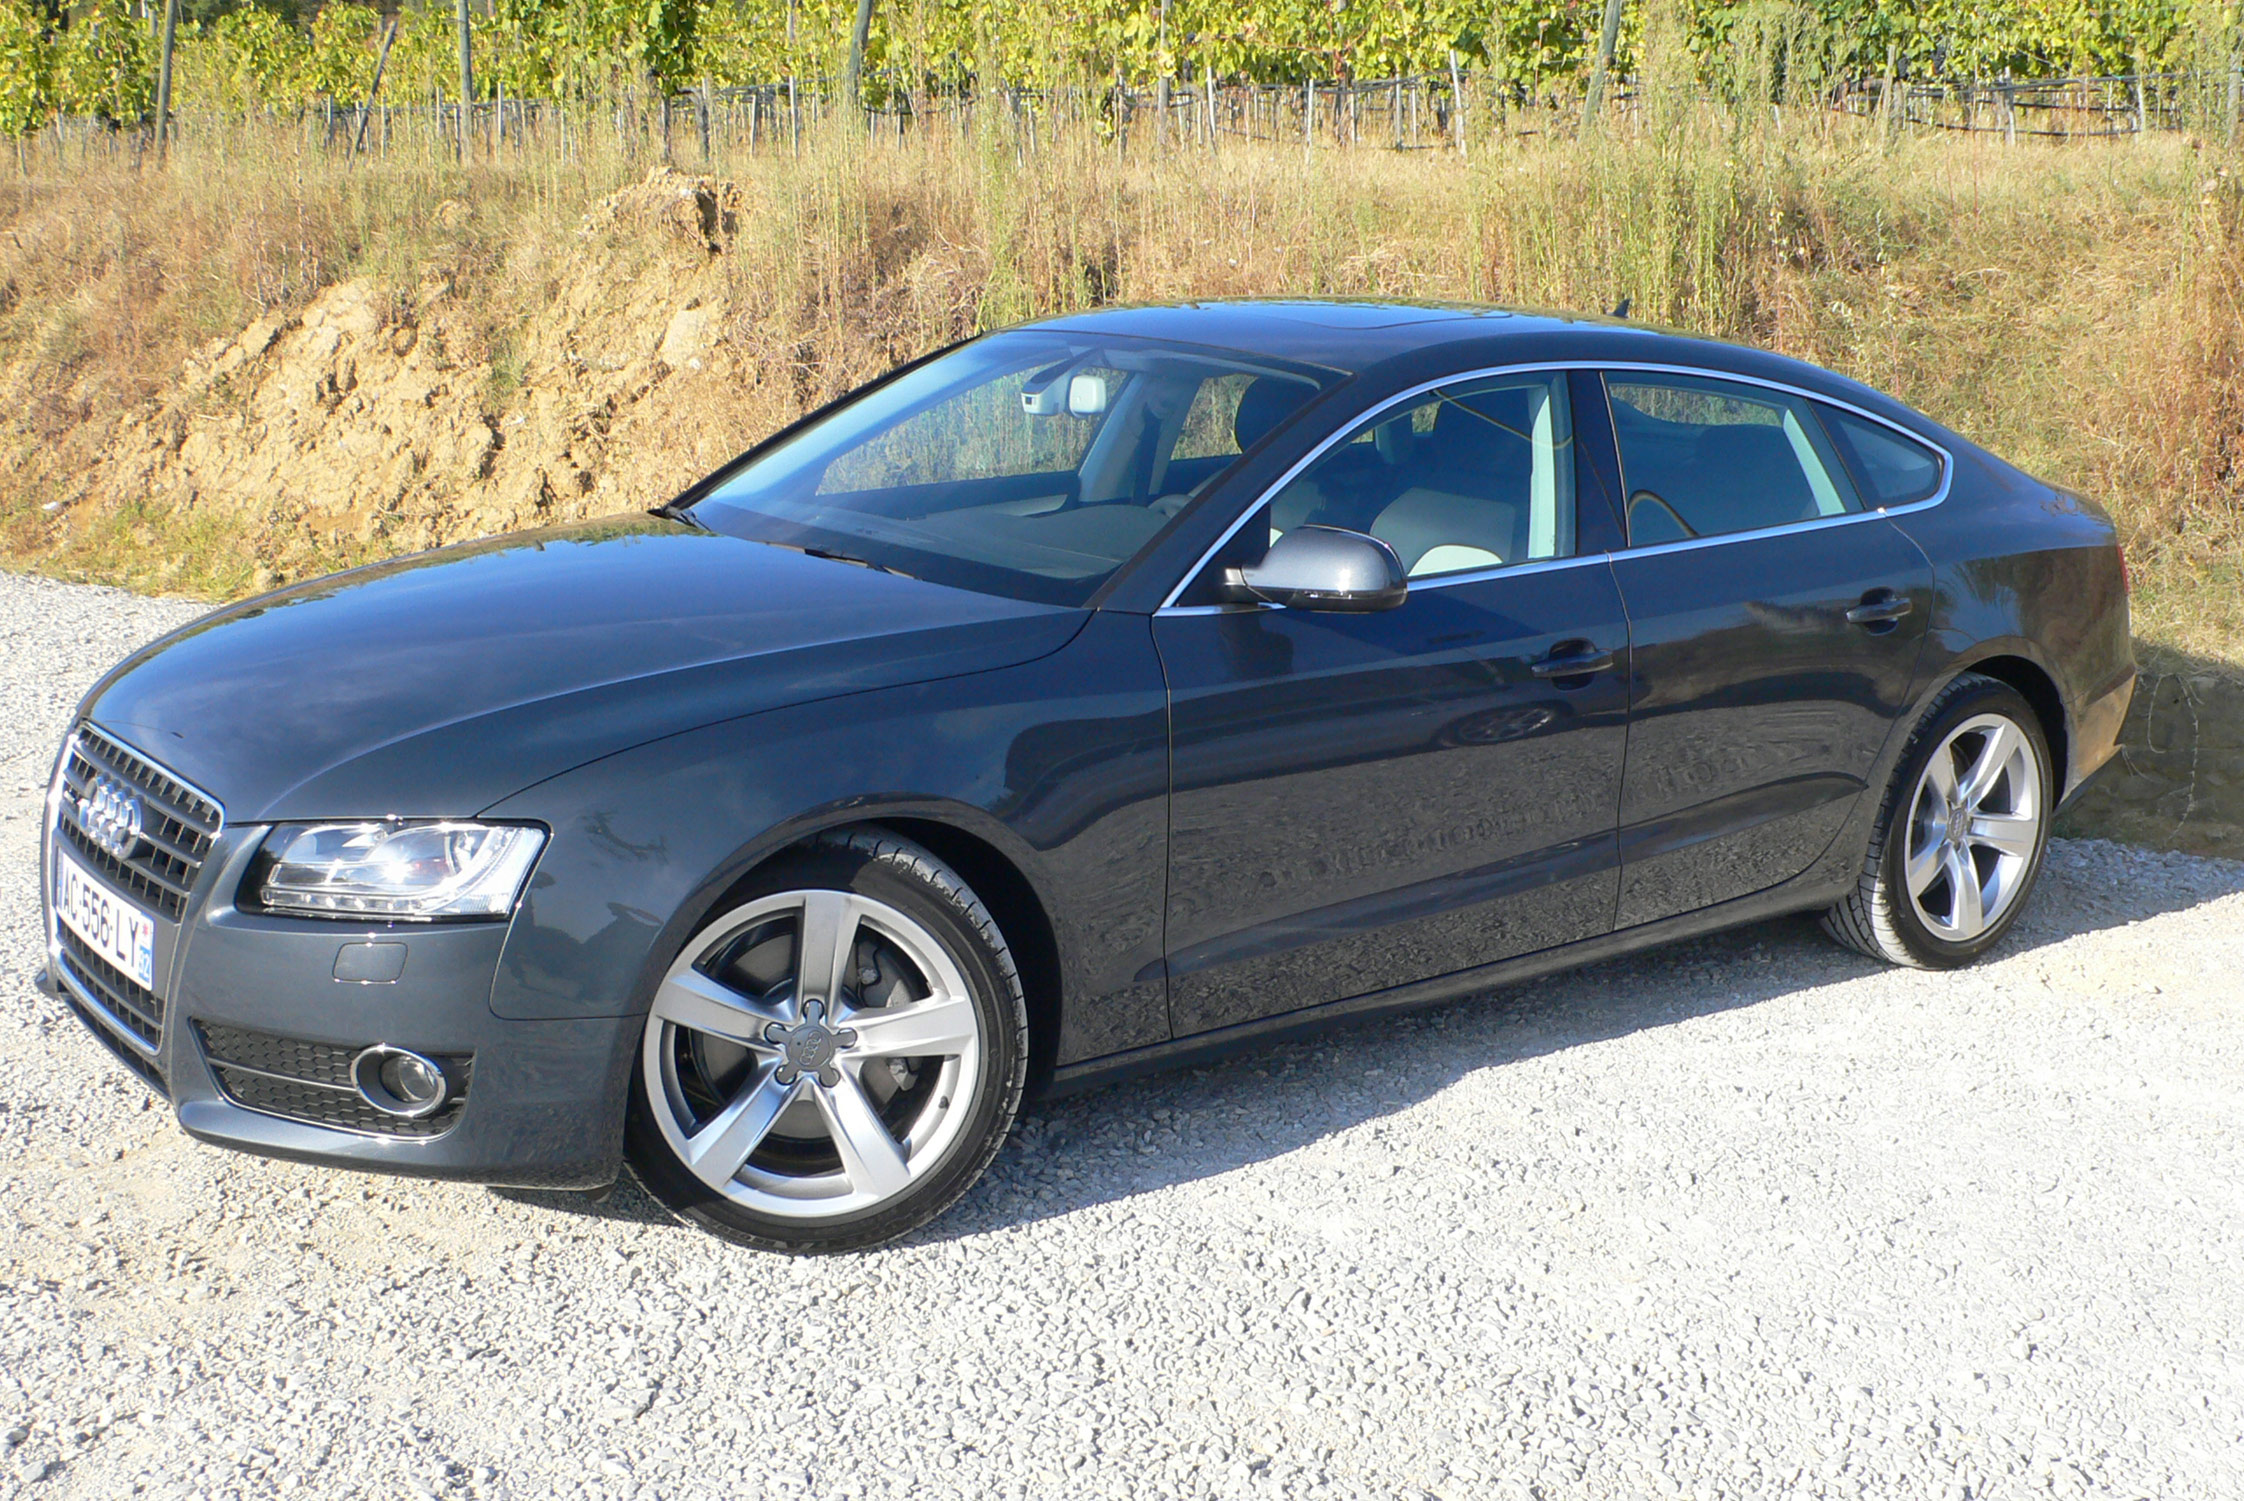 essai audi a5 sportback 3 0 tdi motorlegend. Black Bedroom Furniture Sets. Home Design Ideas